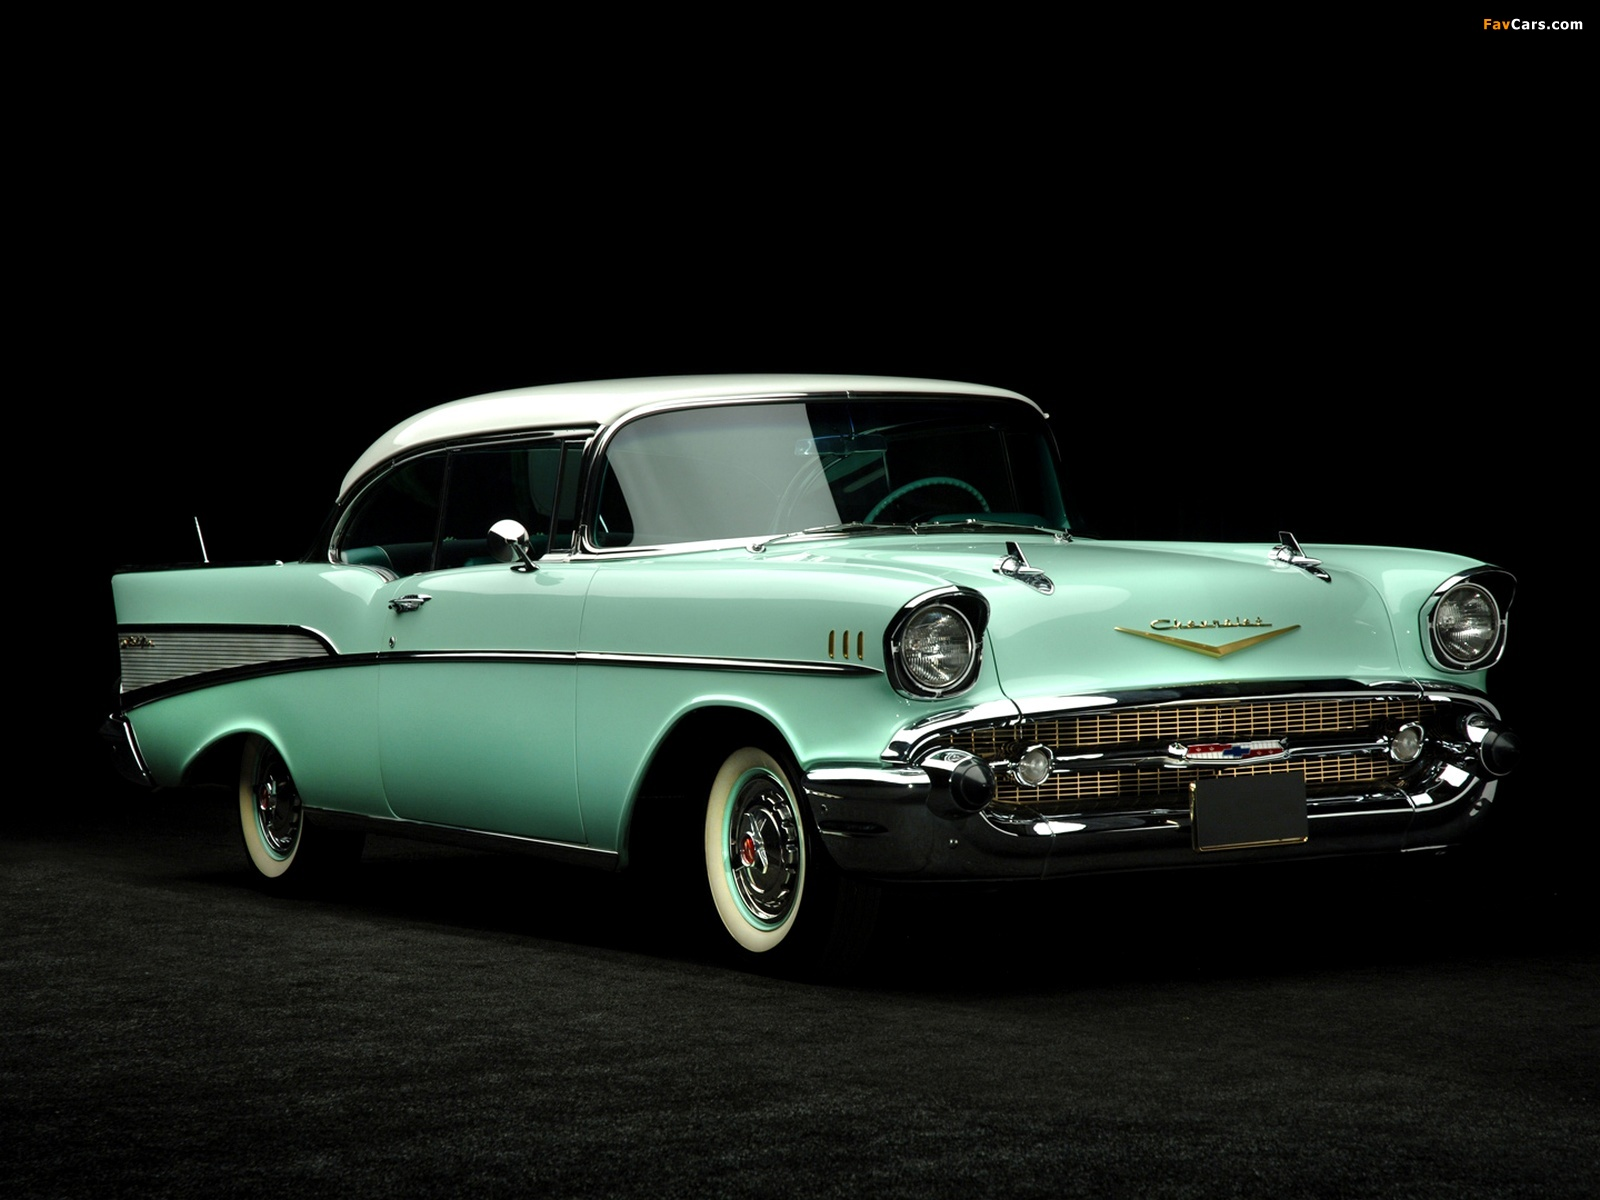 Chevrolet Bel Air >> Chevrolet Bel Air Sport Coupe (2454-1037D) 1957 wallpapers (1600x1200)